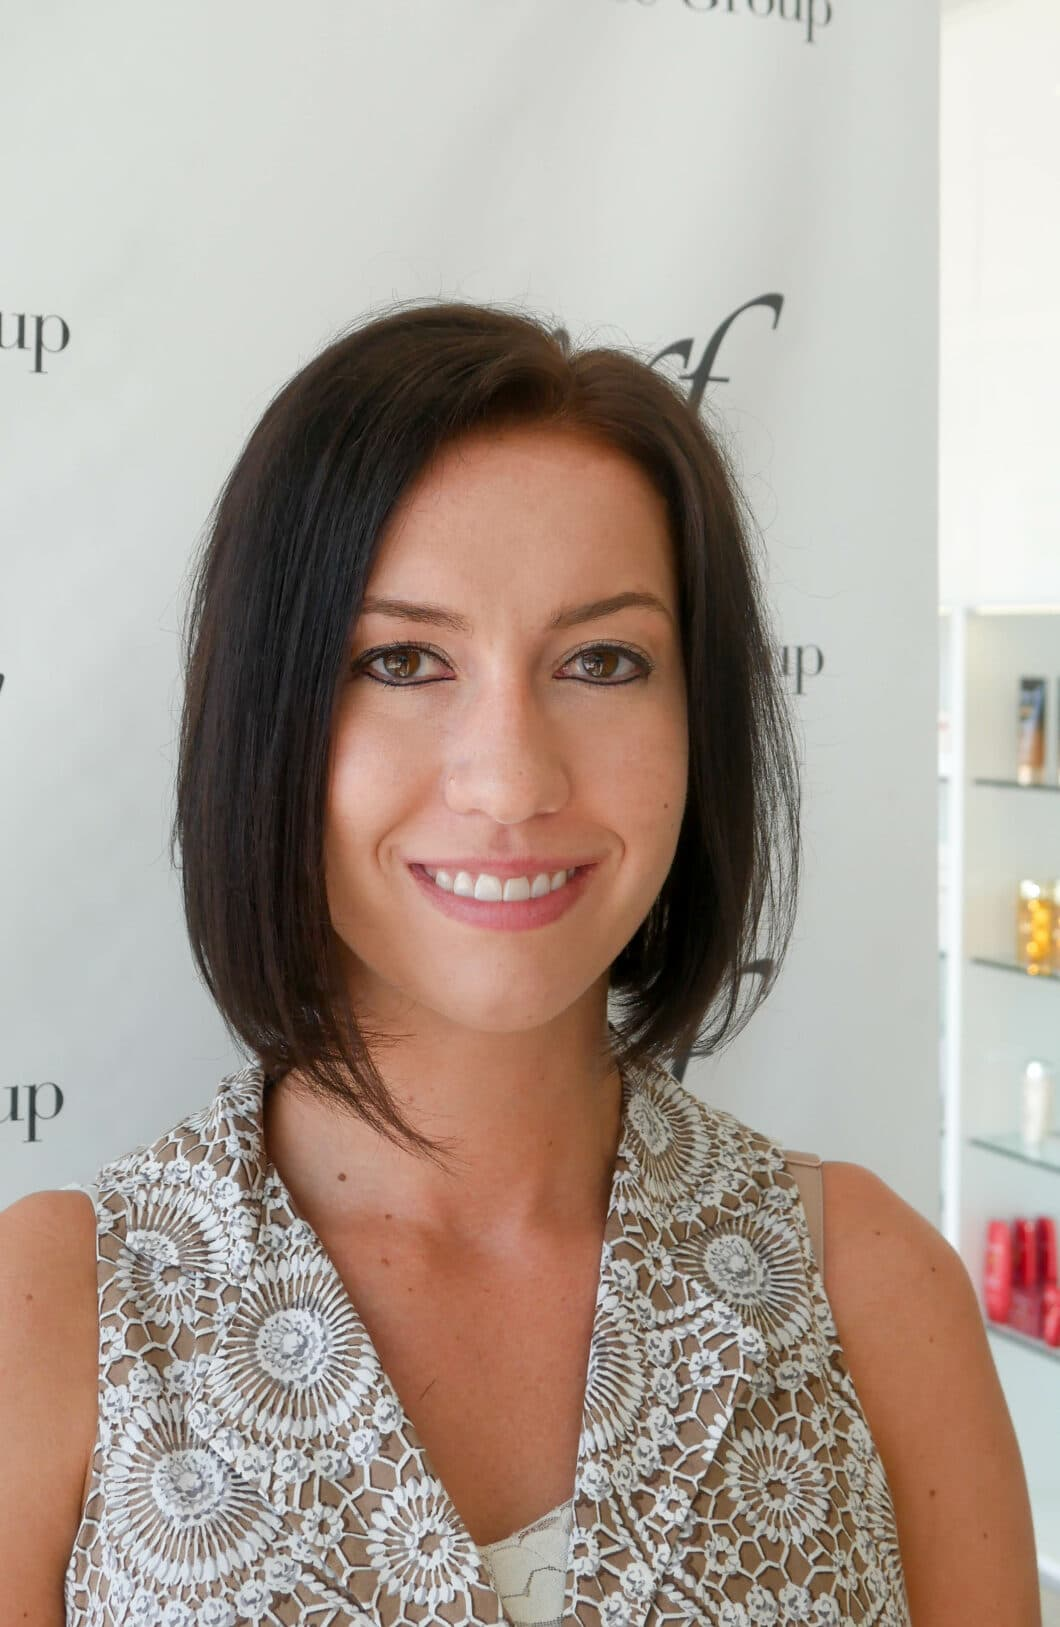 Marie-France Group Hair Cut & Color Review